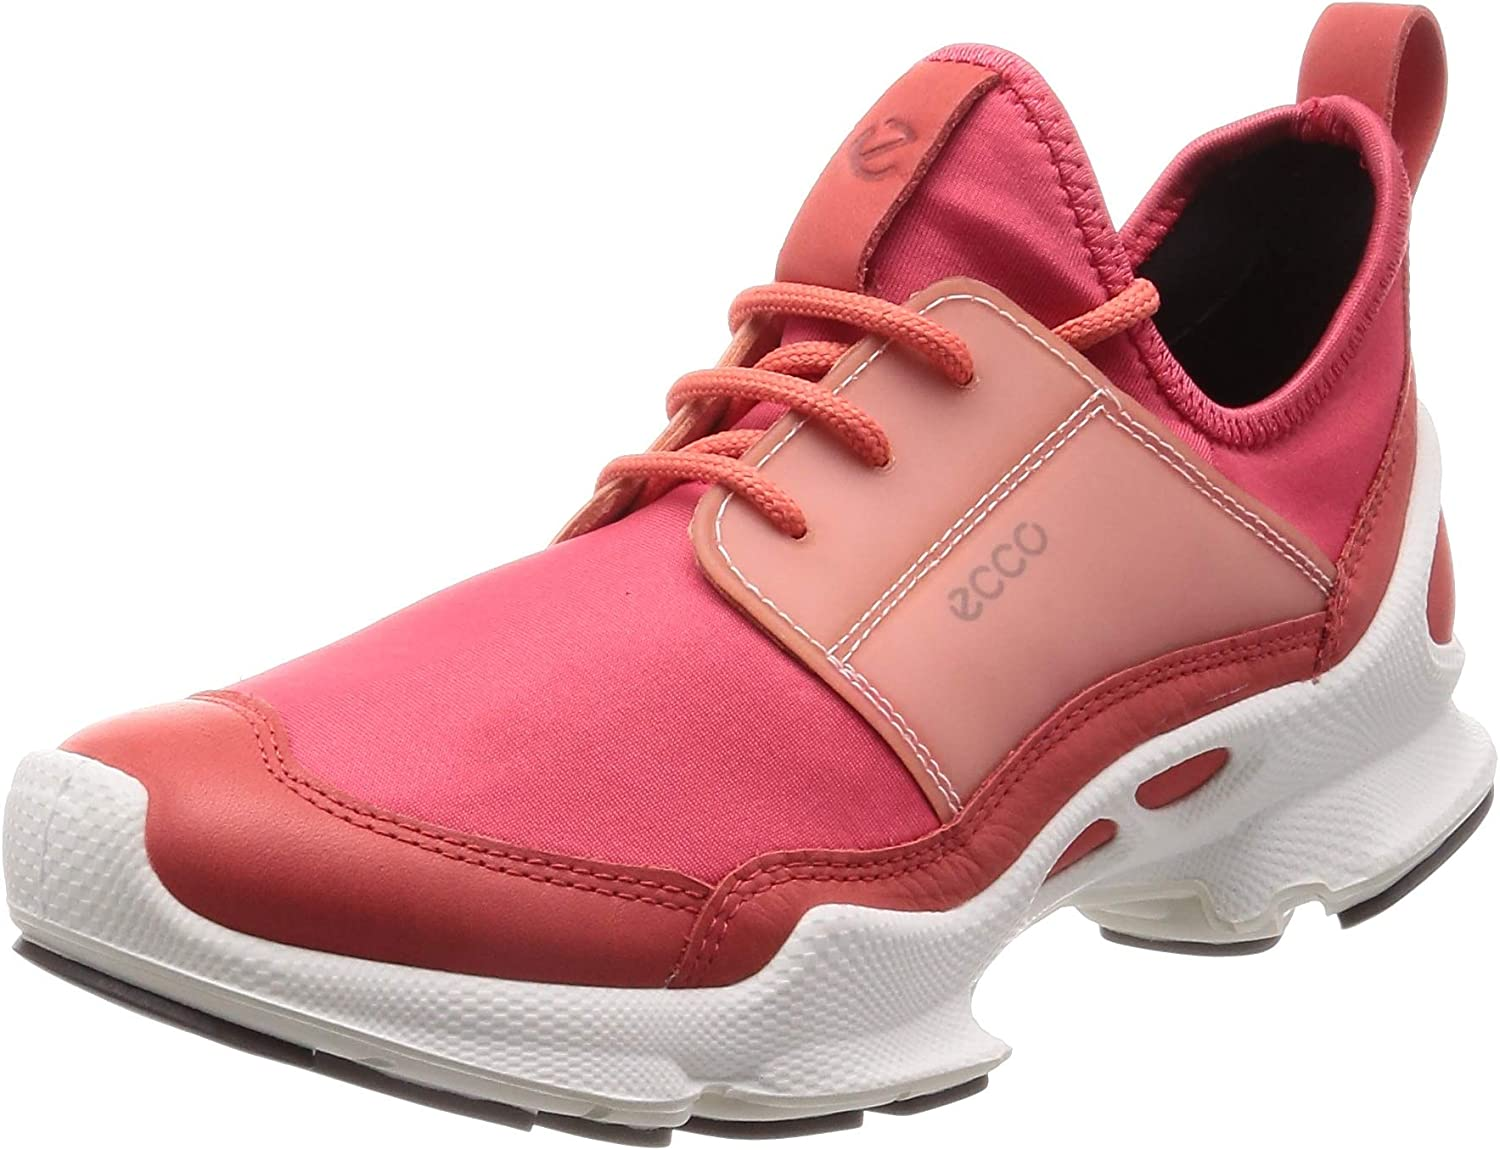 Ecco Biom C W shoes Red